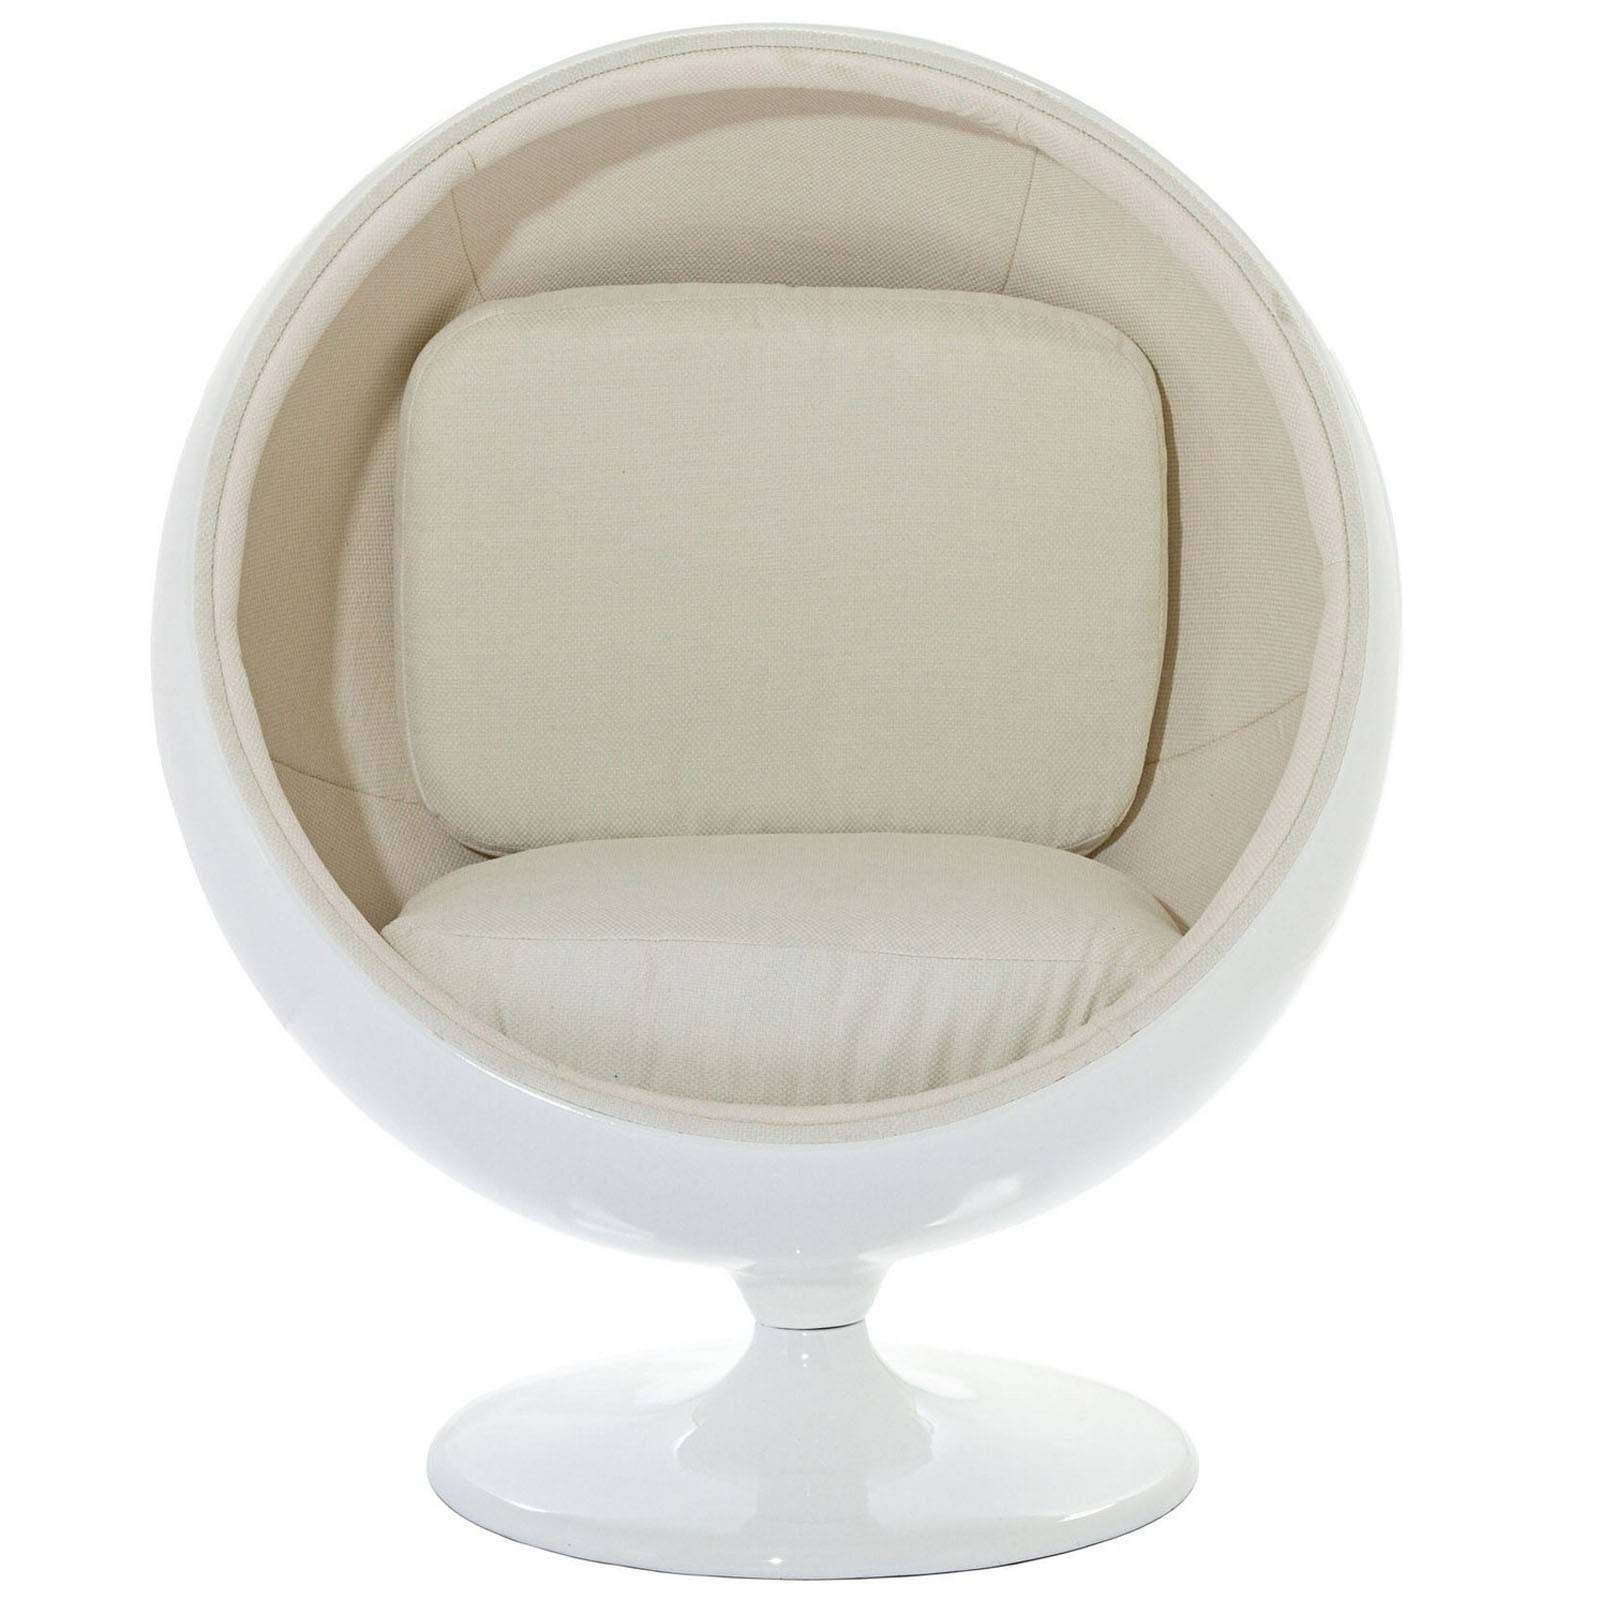 knoll spark chair review horse saddle seat eero aarnio style ball